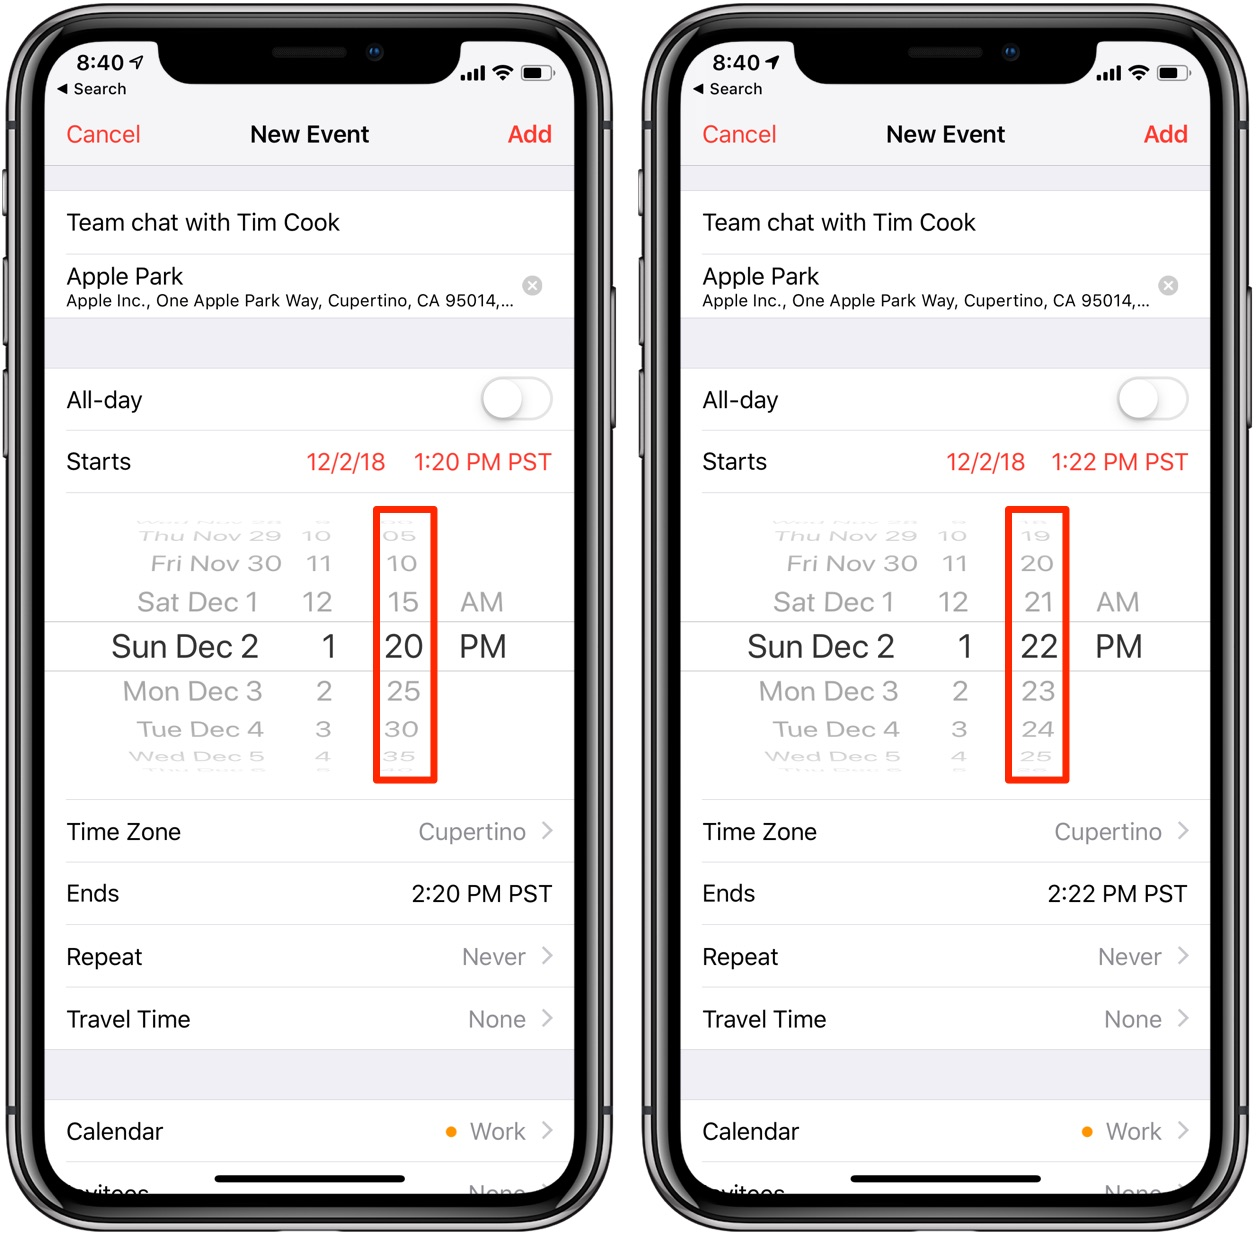 Apple Calendar tips for iPhone include double-tapping the spinning wheel time selector to set precise even times in 1-minute increments